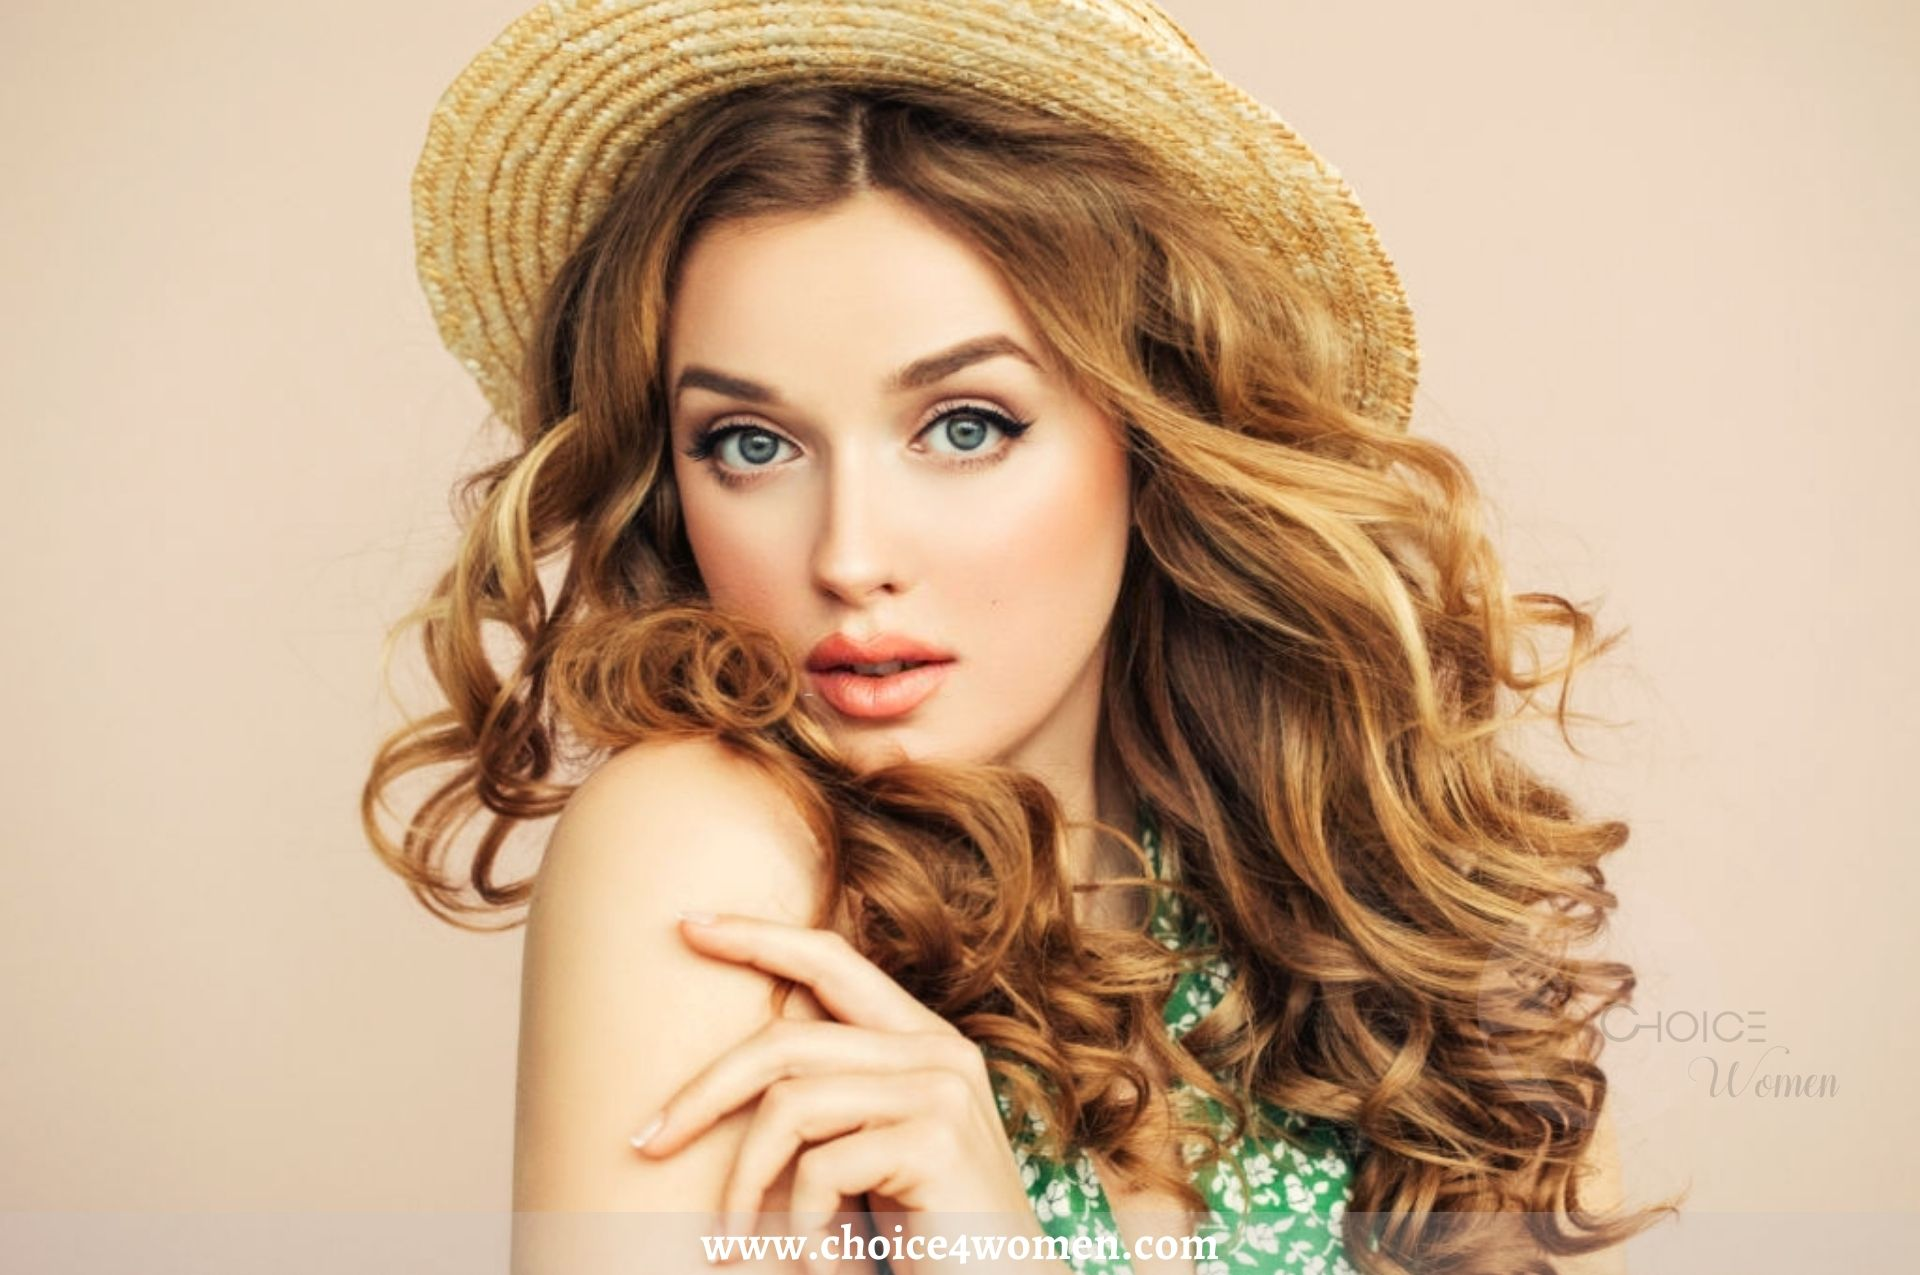 10 Amazing Tips For Perfect Summer Makeup Ideas